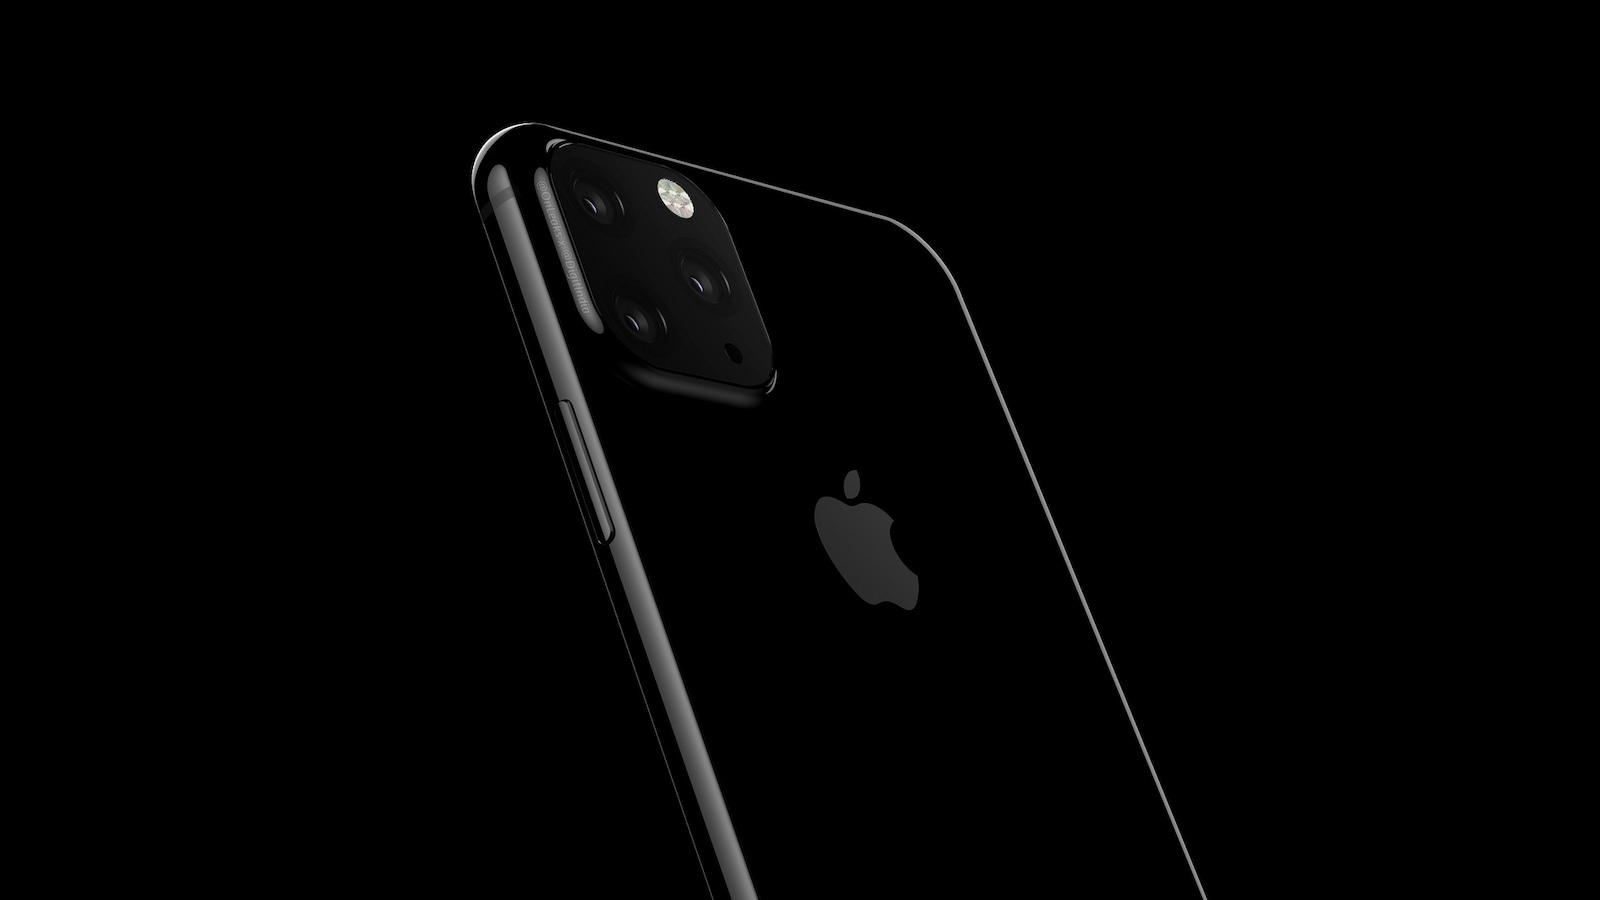 iphone-xi-leak-1.jpg